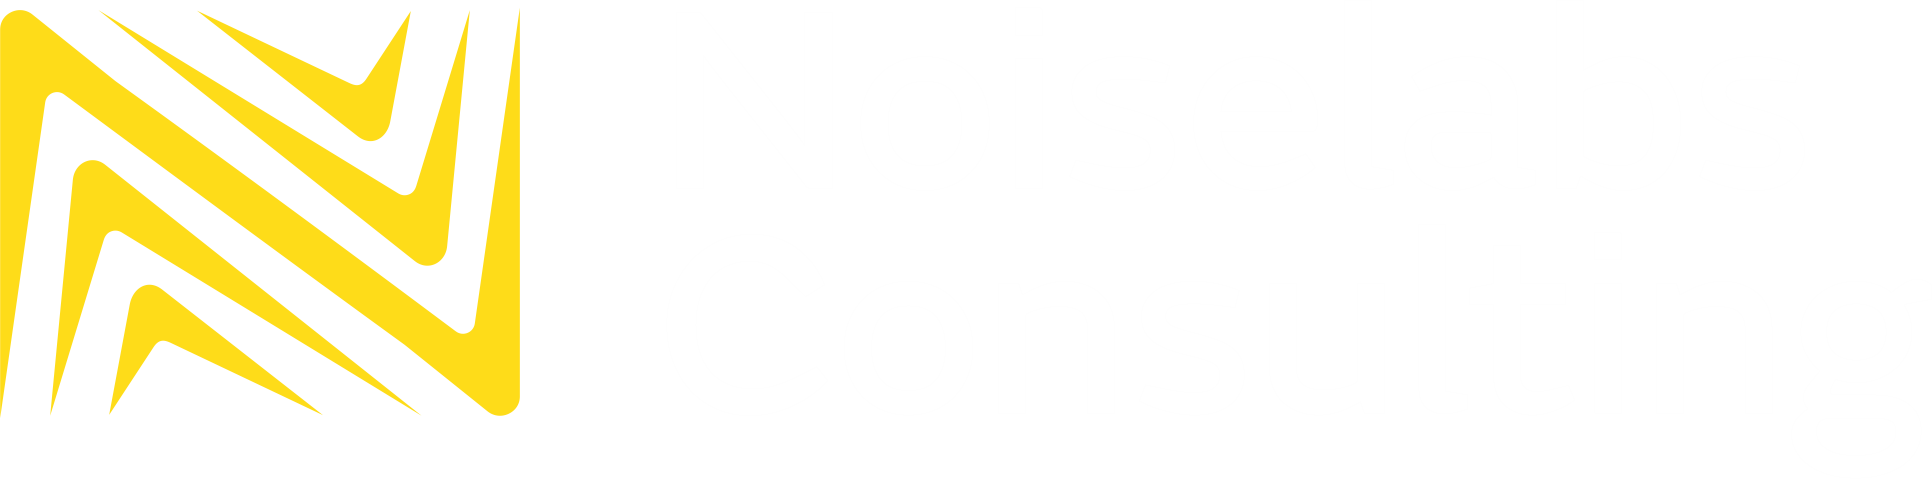 Noiselabs Consulting